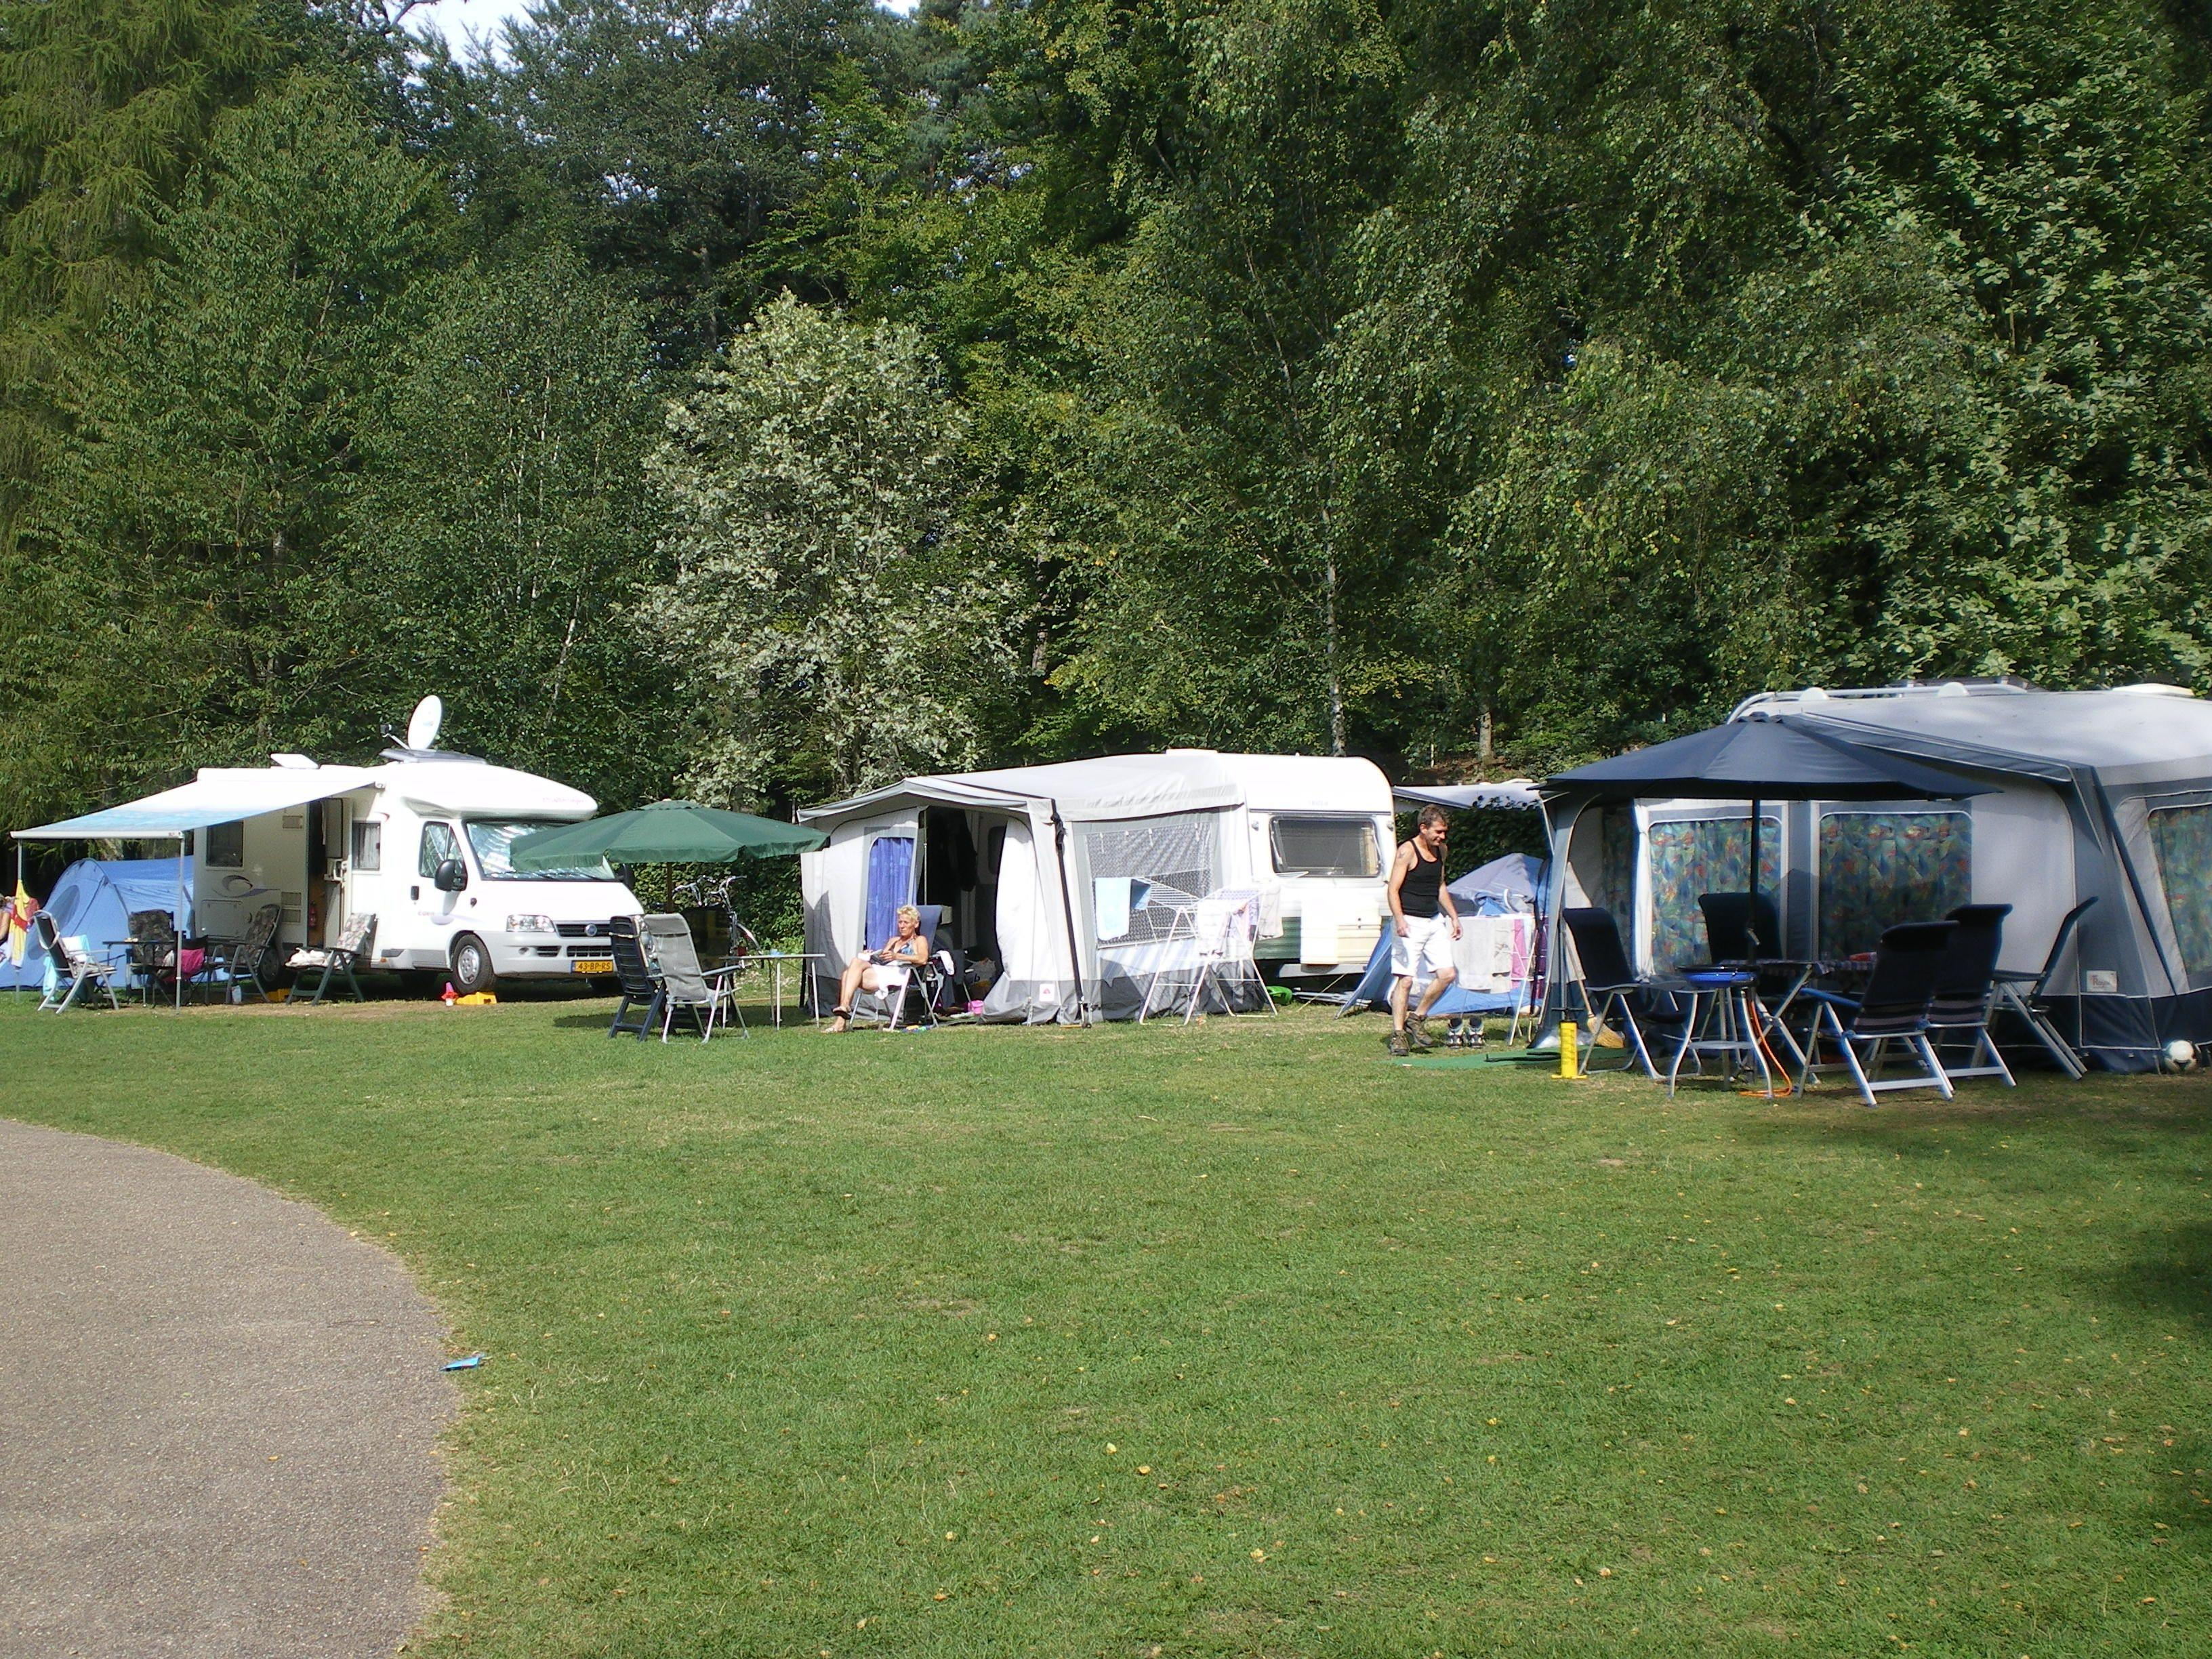 Establishment Camping Plage Beaufort - Beaufort